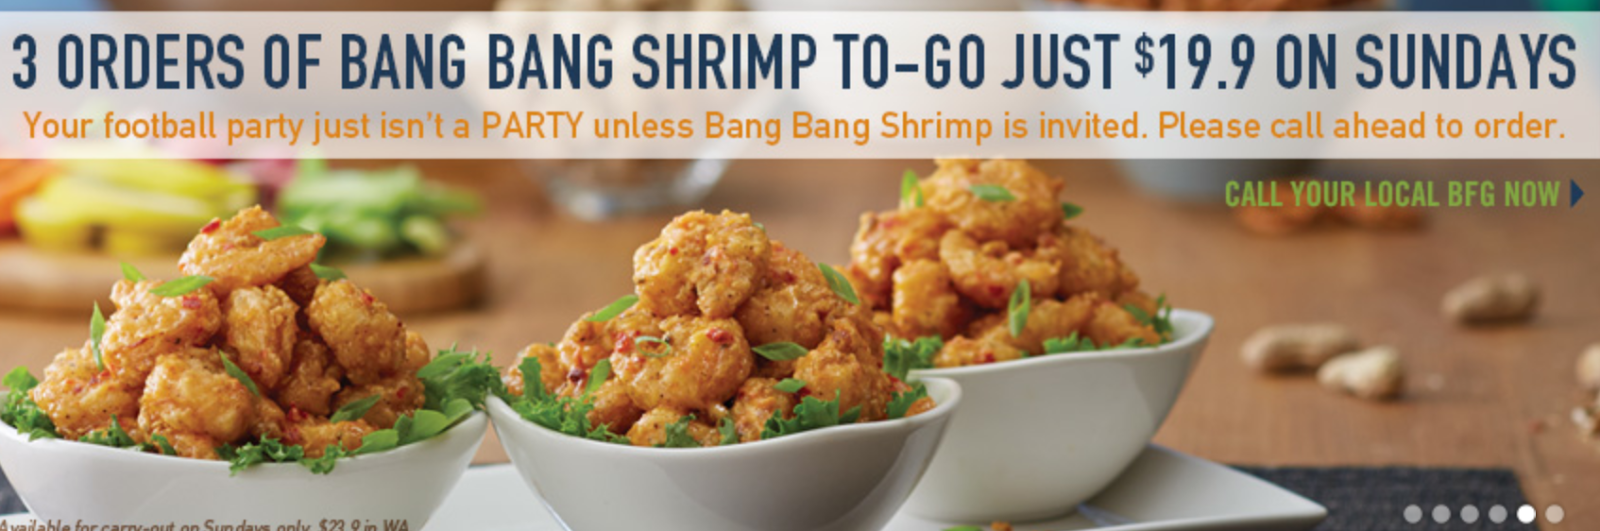 Want to know the current specials we have here at Bonefish Grill? We always having something unique, from entrees to appetizers, to choose from. Available Every Wednesday Night. $6 Bang Wednesday. Spice up the middle of your week with our signature appetizer. Bang Bang Shrimp is just $6 every Wednesday.